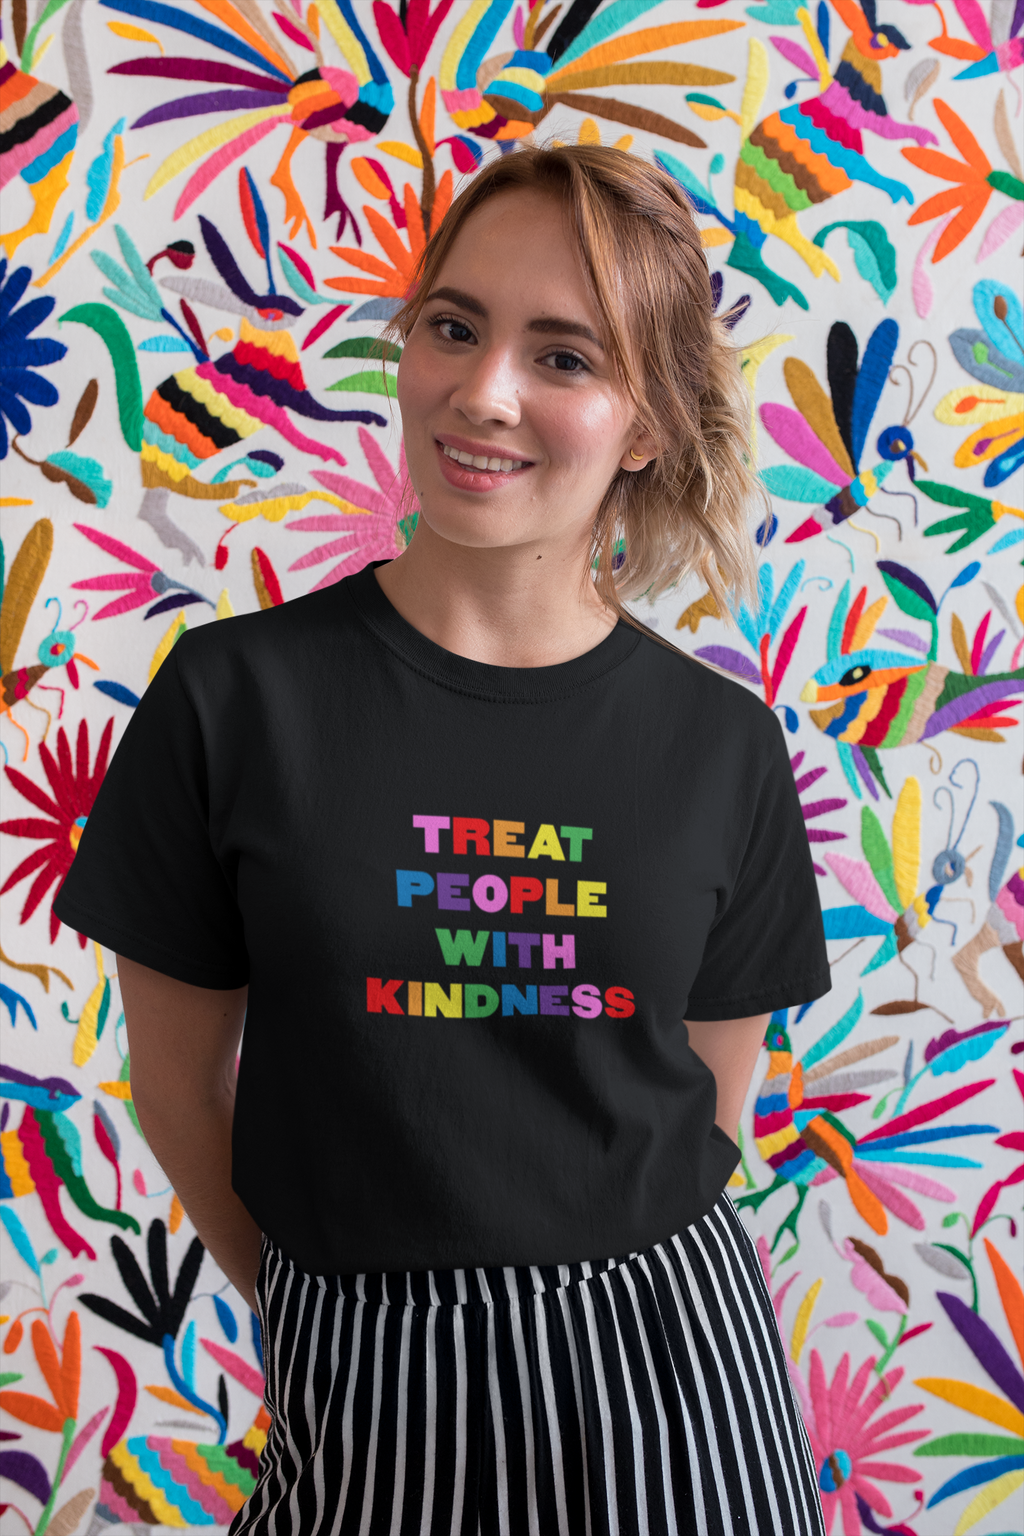 Treat People with Kindness - Badwine Co.